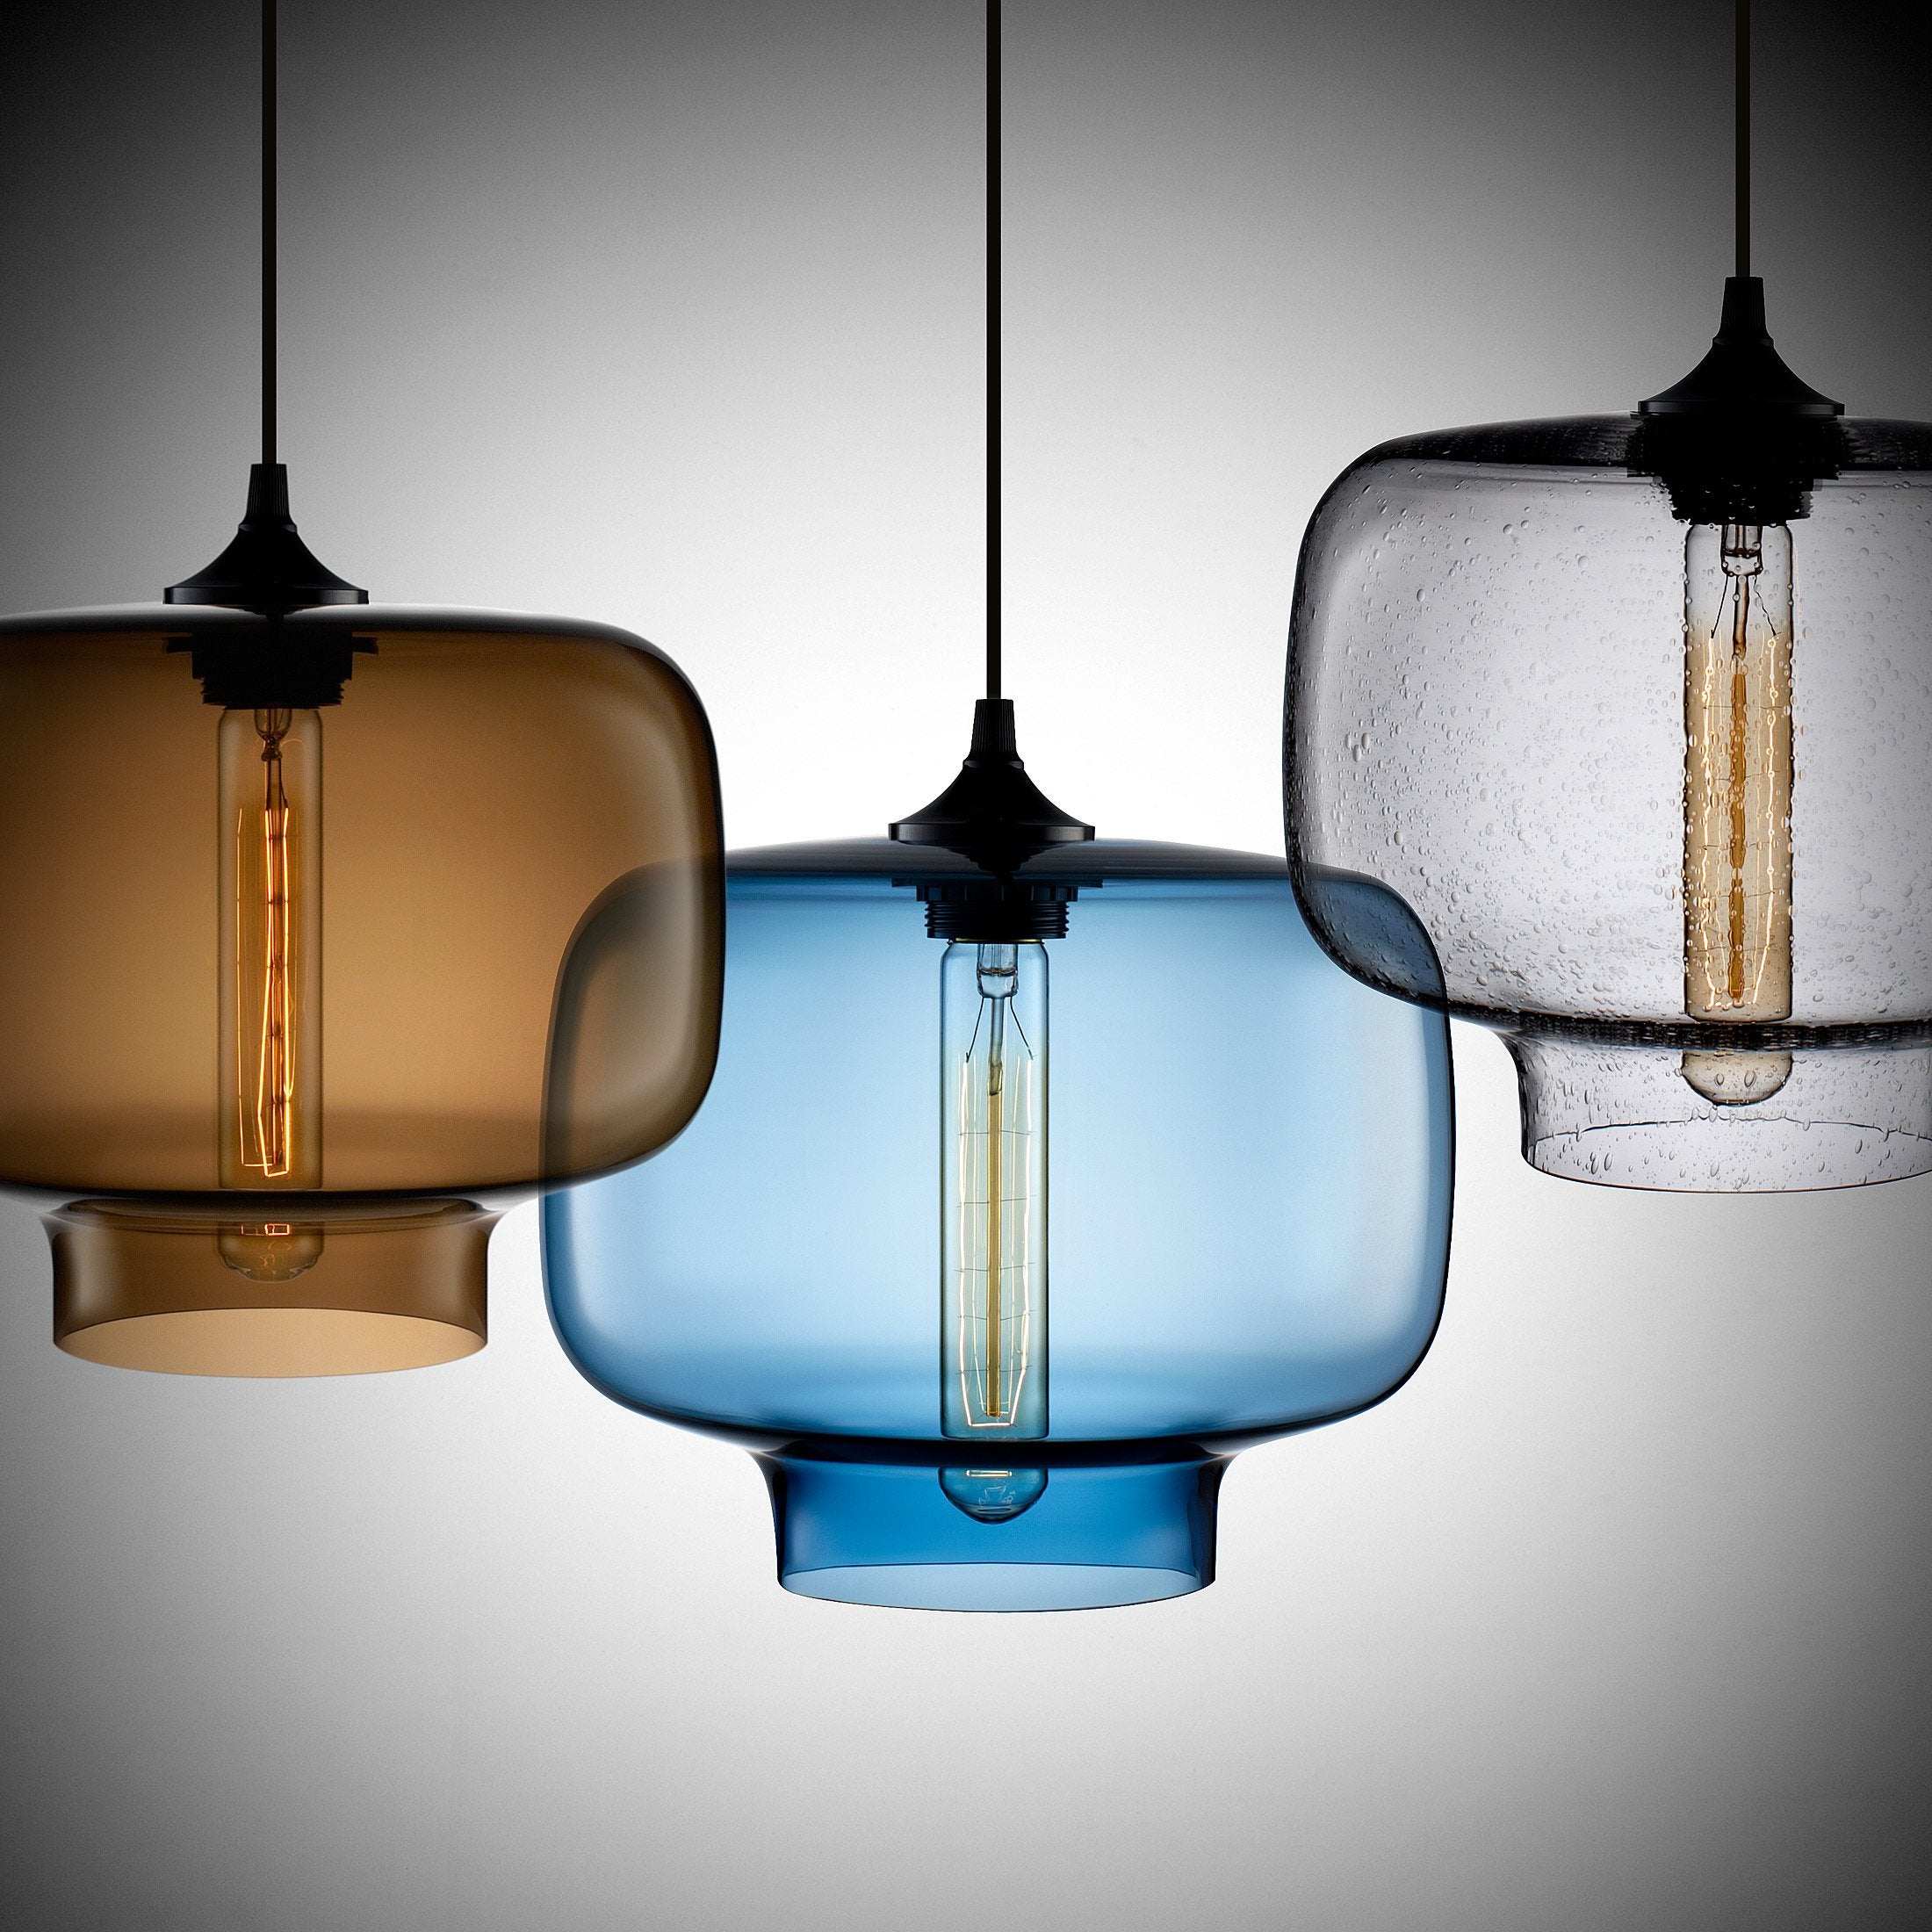 whimsical lighting fixtures. Whimsical Lighting Fixtures N